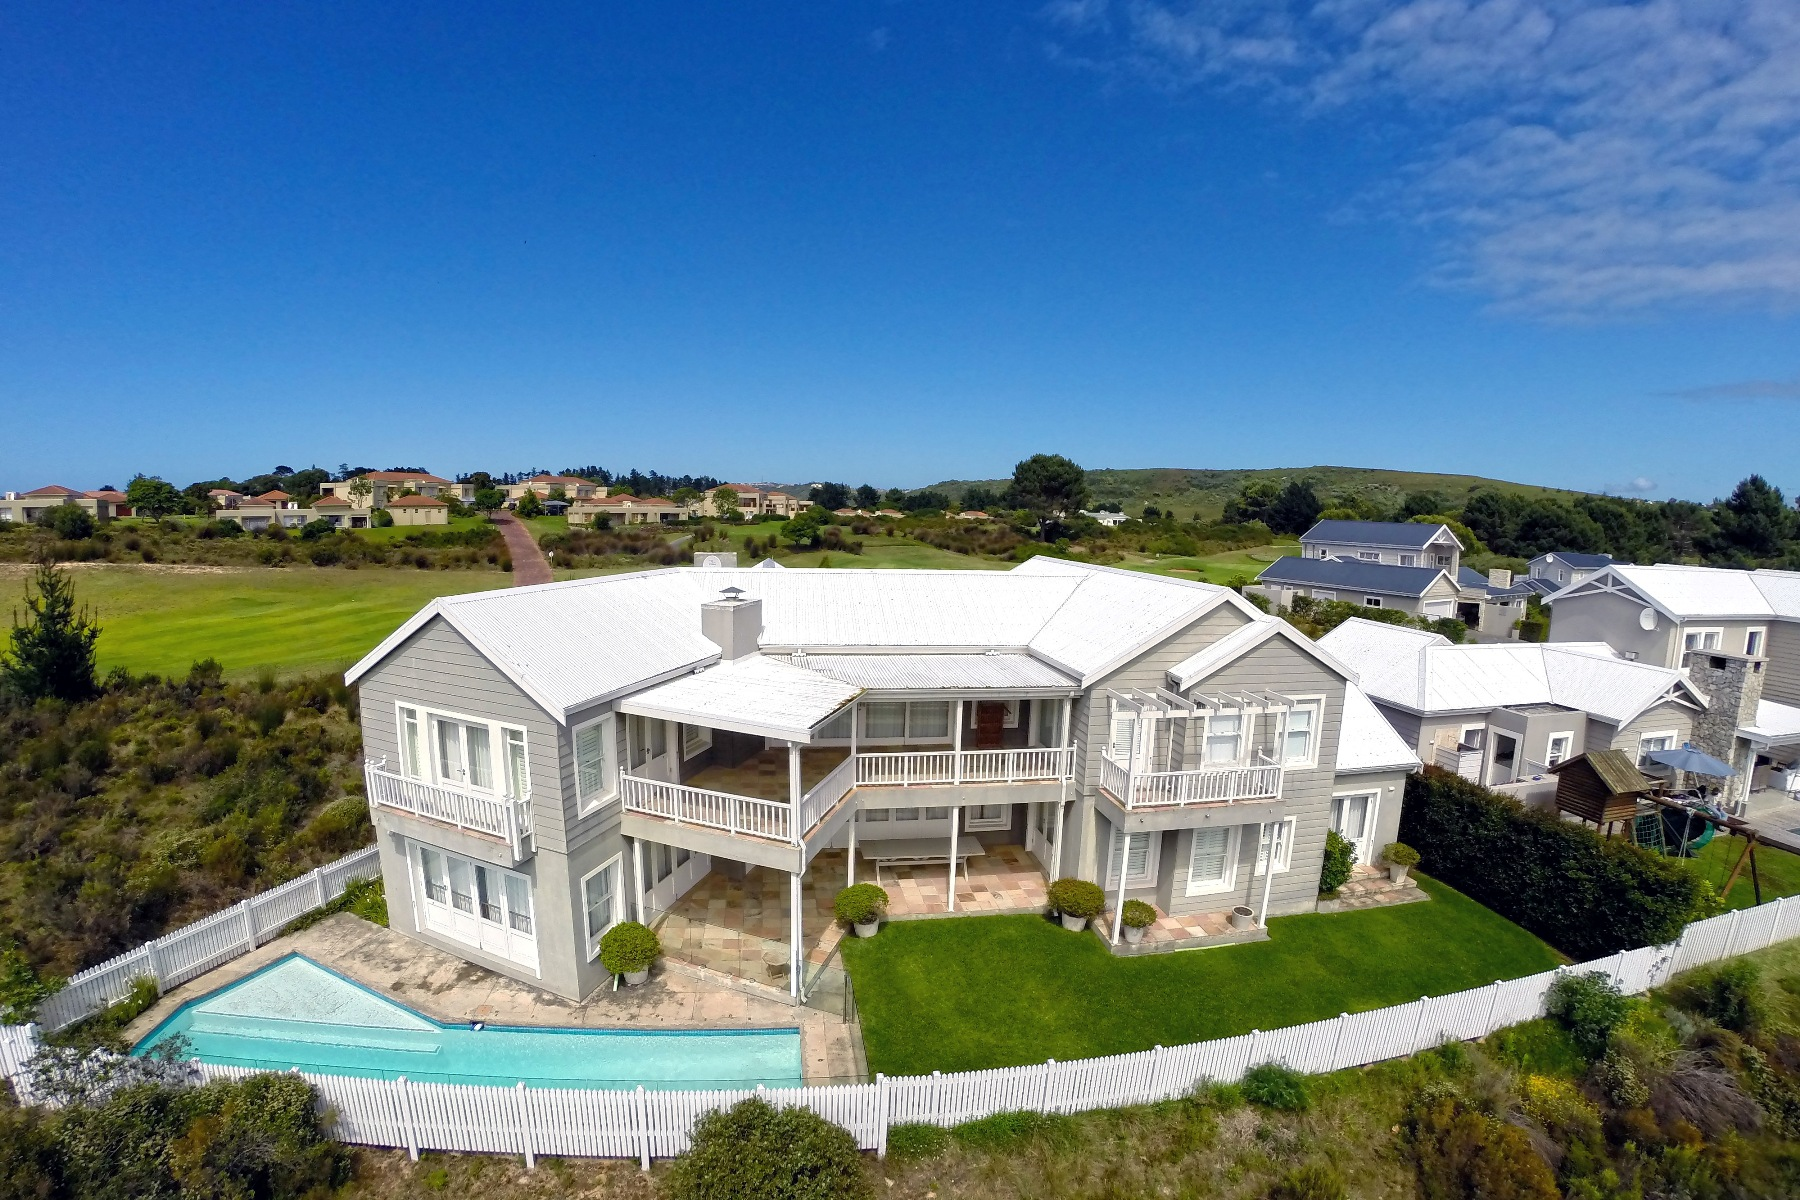 Single Family Home for Sale at Life On The Green Plettenberg Bay, Western Cape, 6600 South Africa